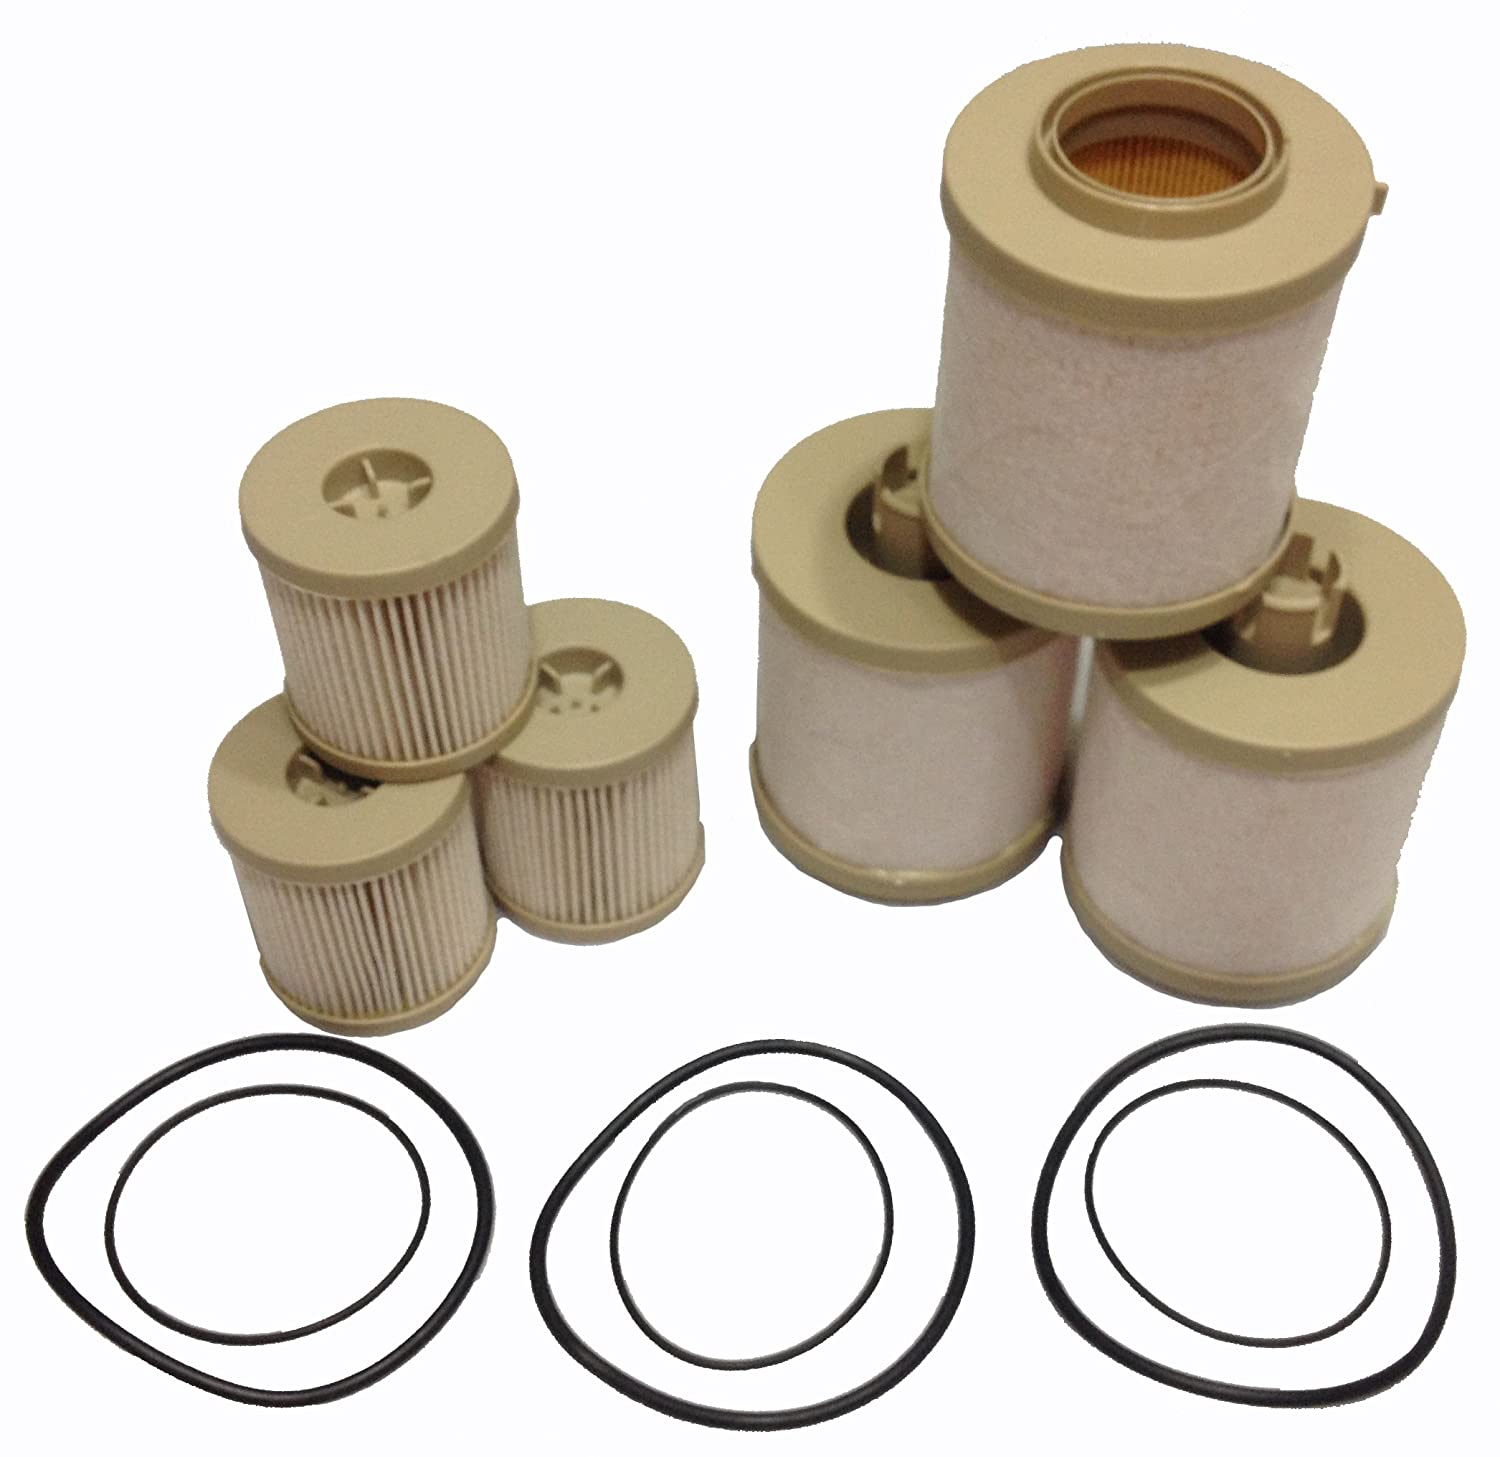 Ford 6.0L 2003-2007 Diesel Fuel Filter 3 Pack includes lower lifter pump filter and upper fuel bowl filter ADT-60-FD-4604 Ford F250 F350 F450 F550 F650 EXCURSION FD-4604 FD-4616 Replacements